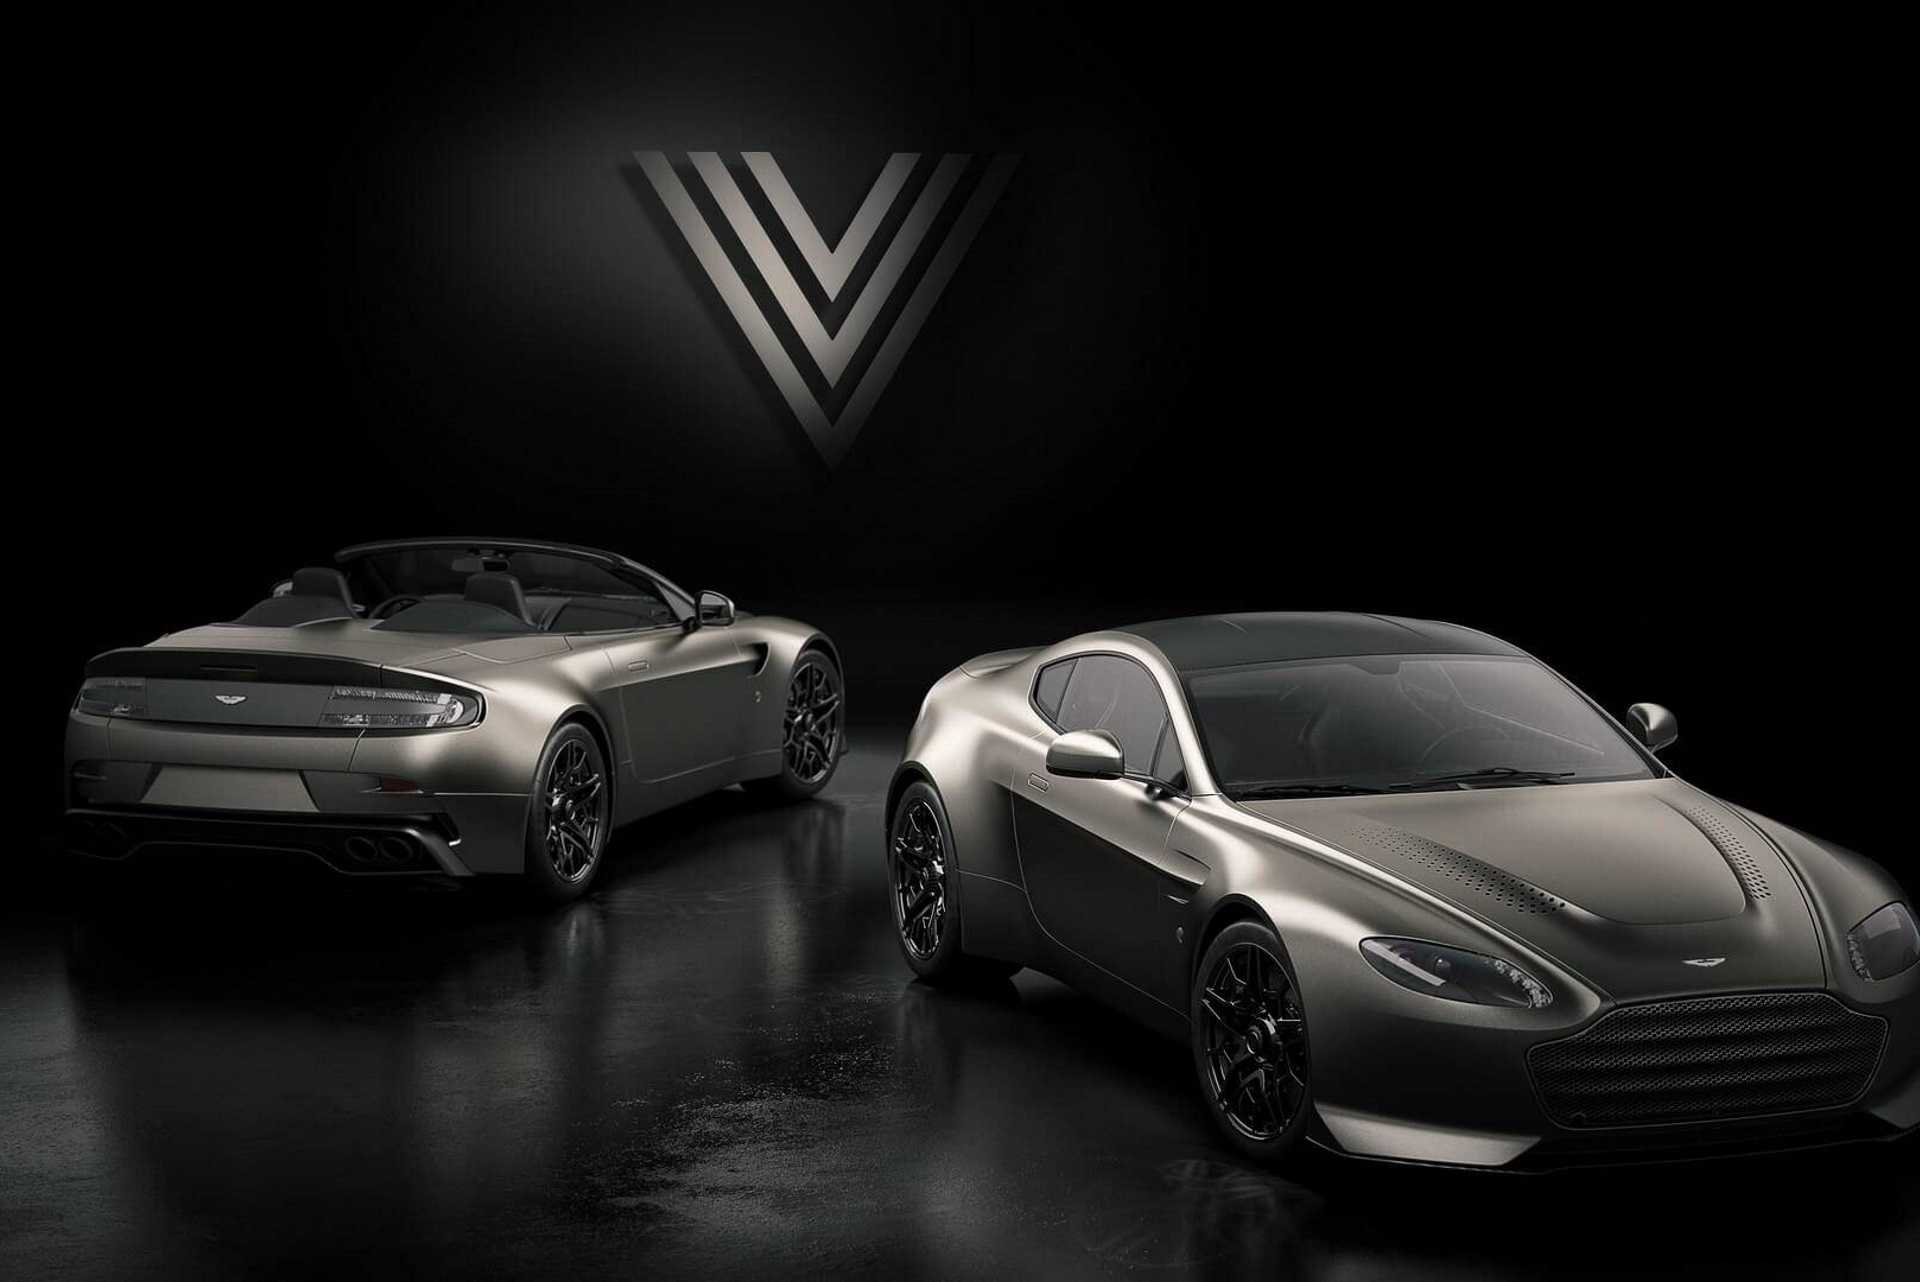 nouvelle ancienne aston martin v12 vantage v600. Black Bedroom Furniture Sets. Home Design Ideas